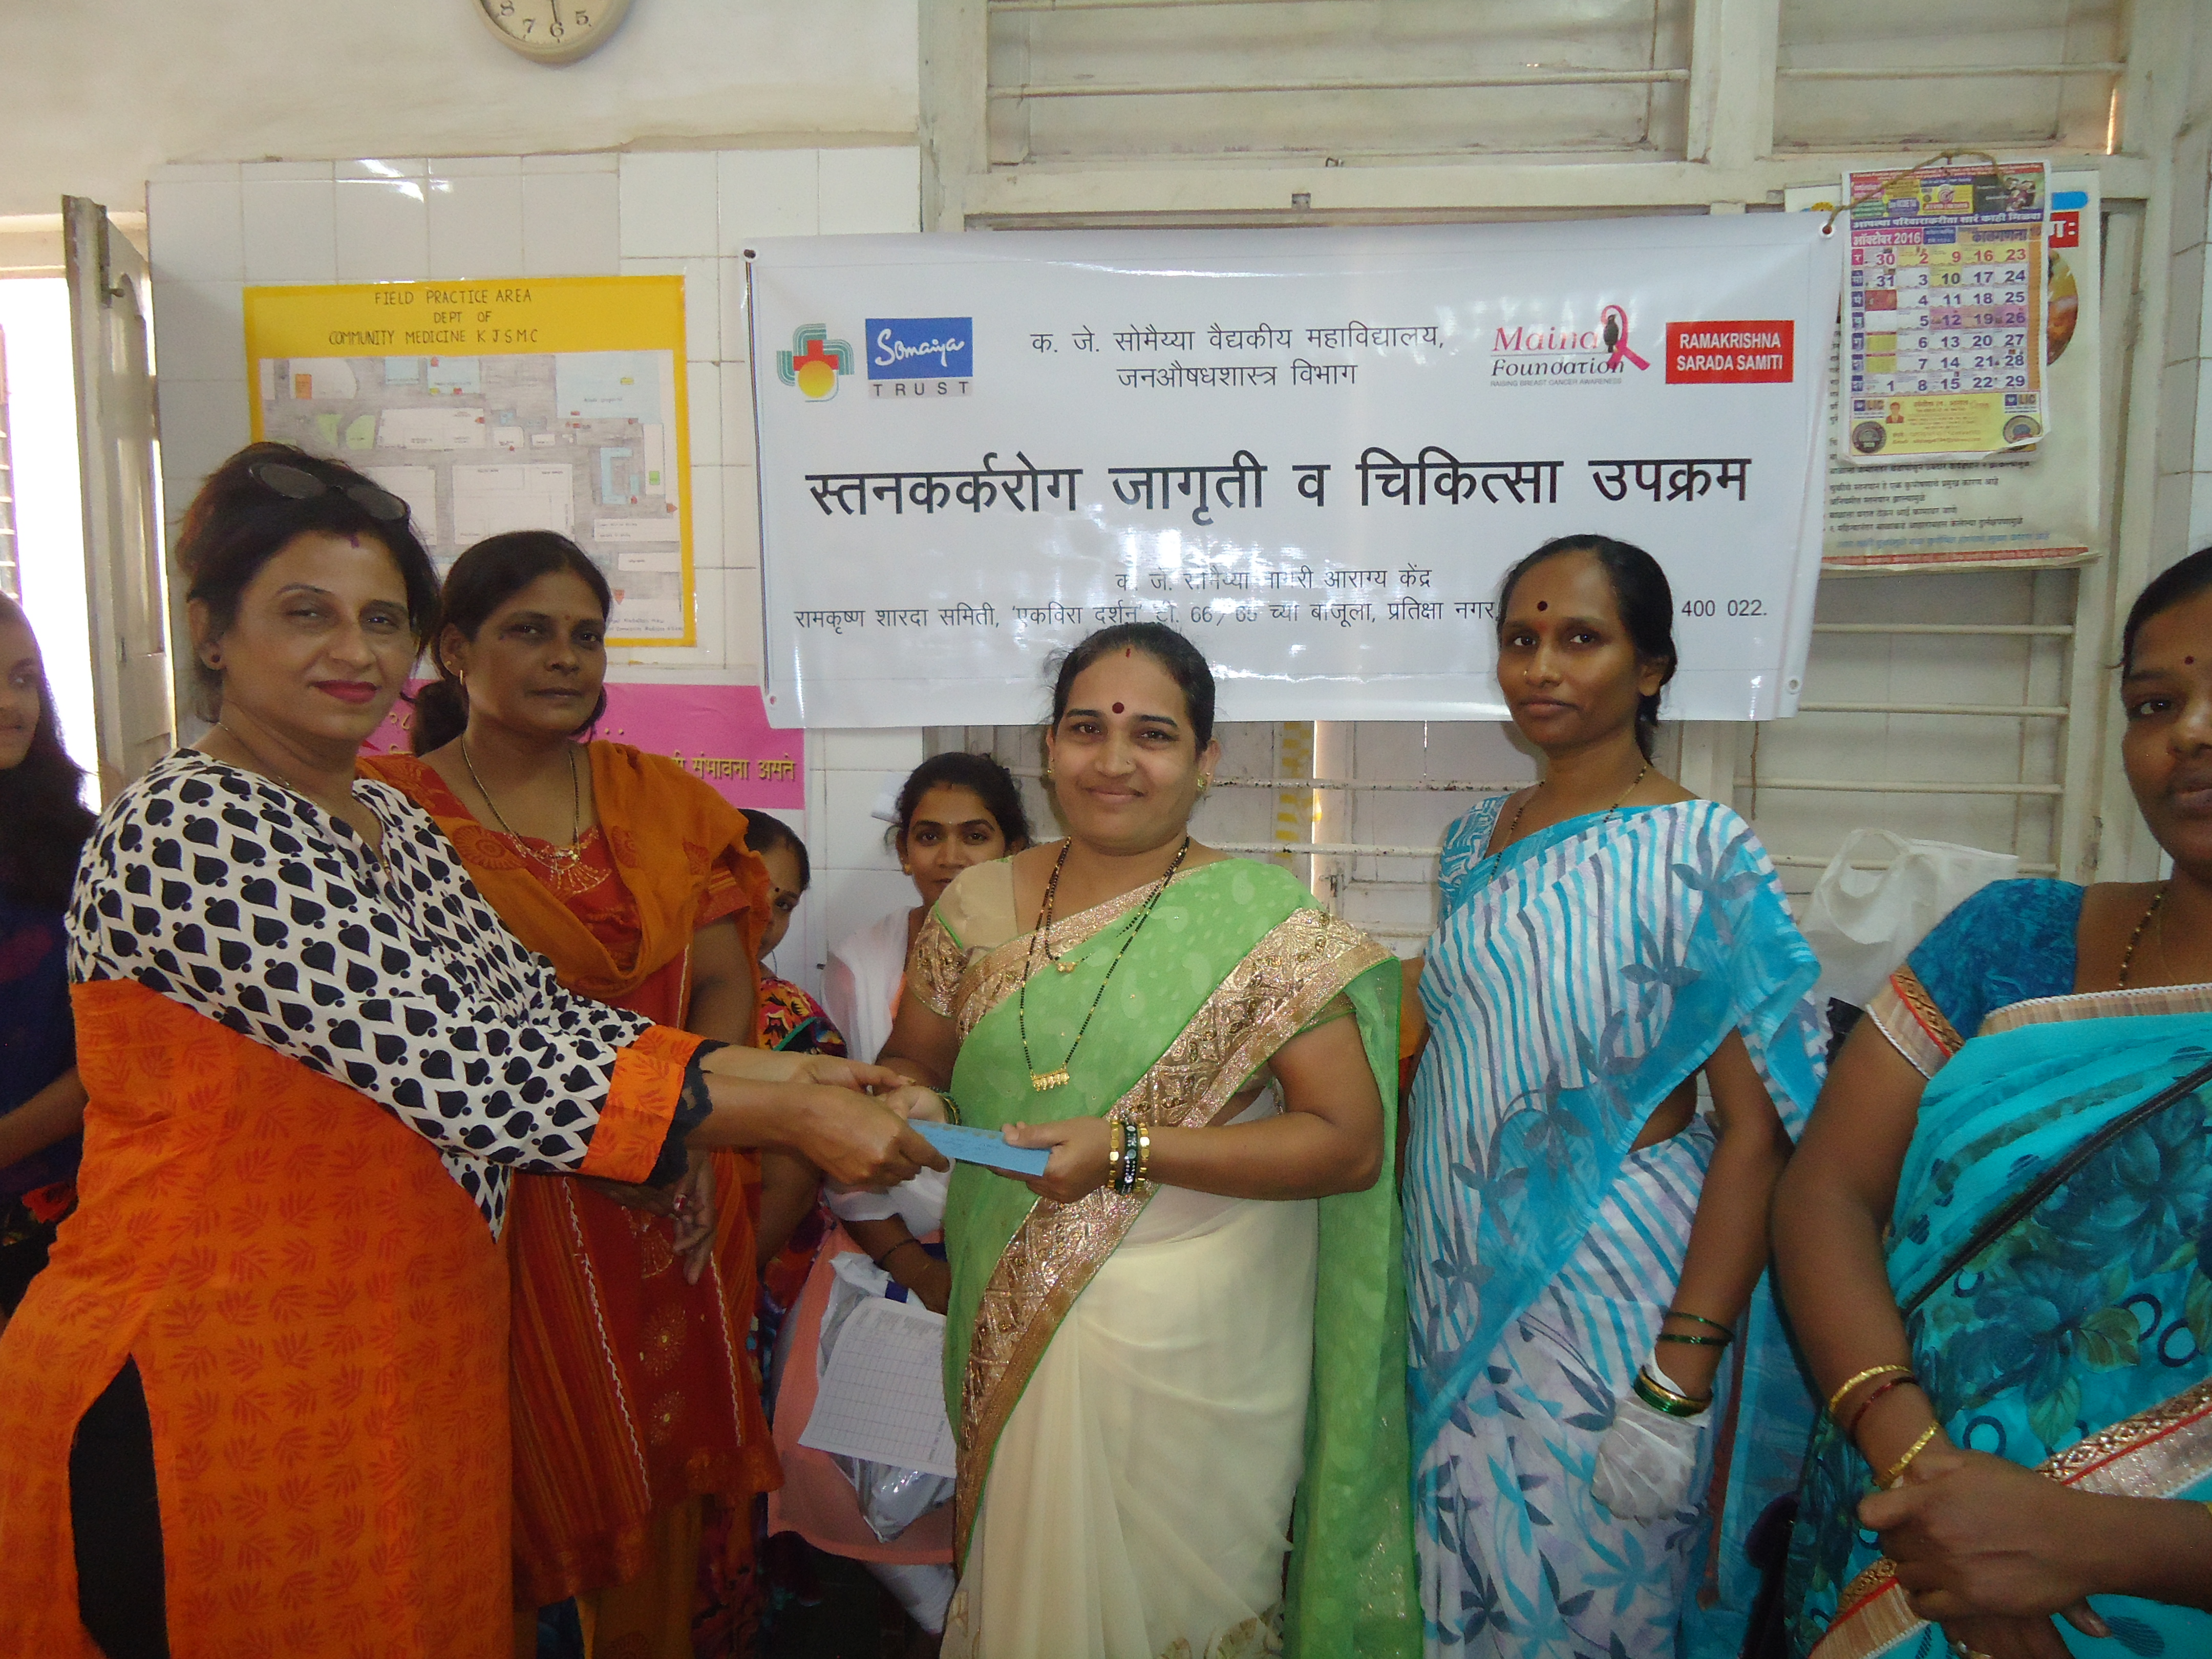 poster-competition-2nd-prize-dsc08263